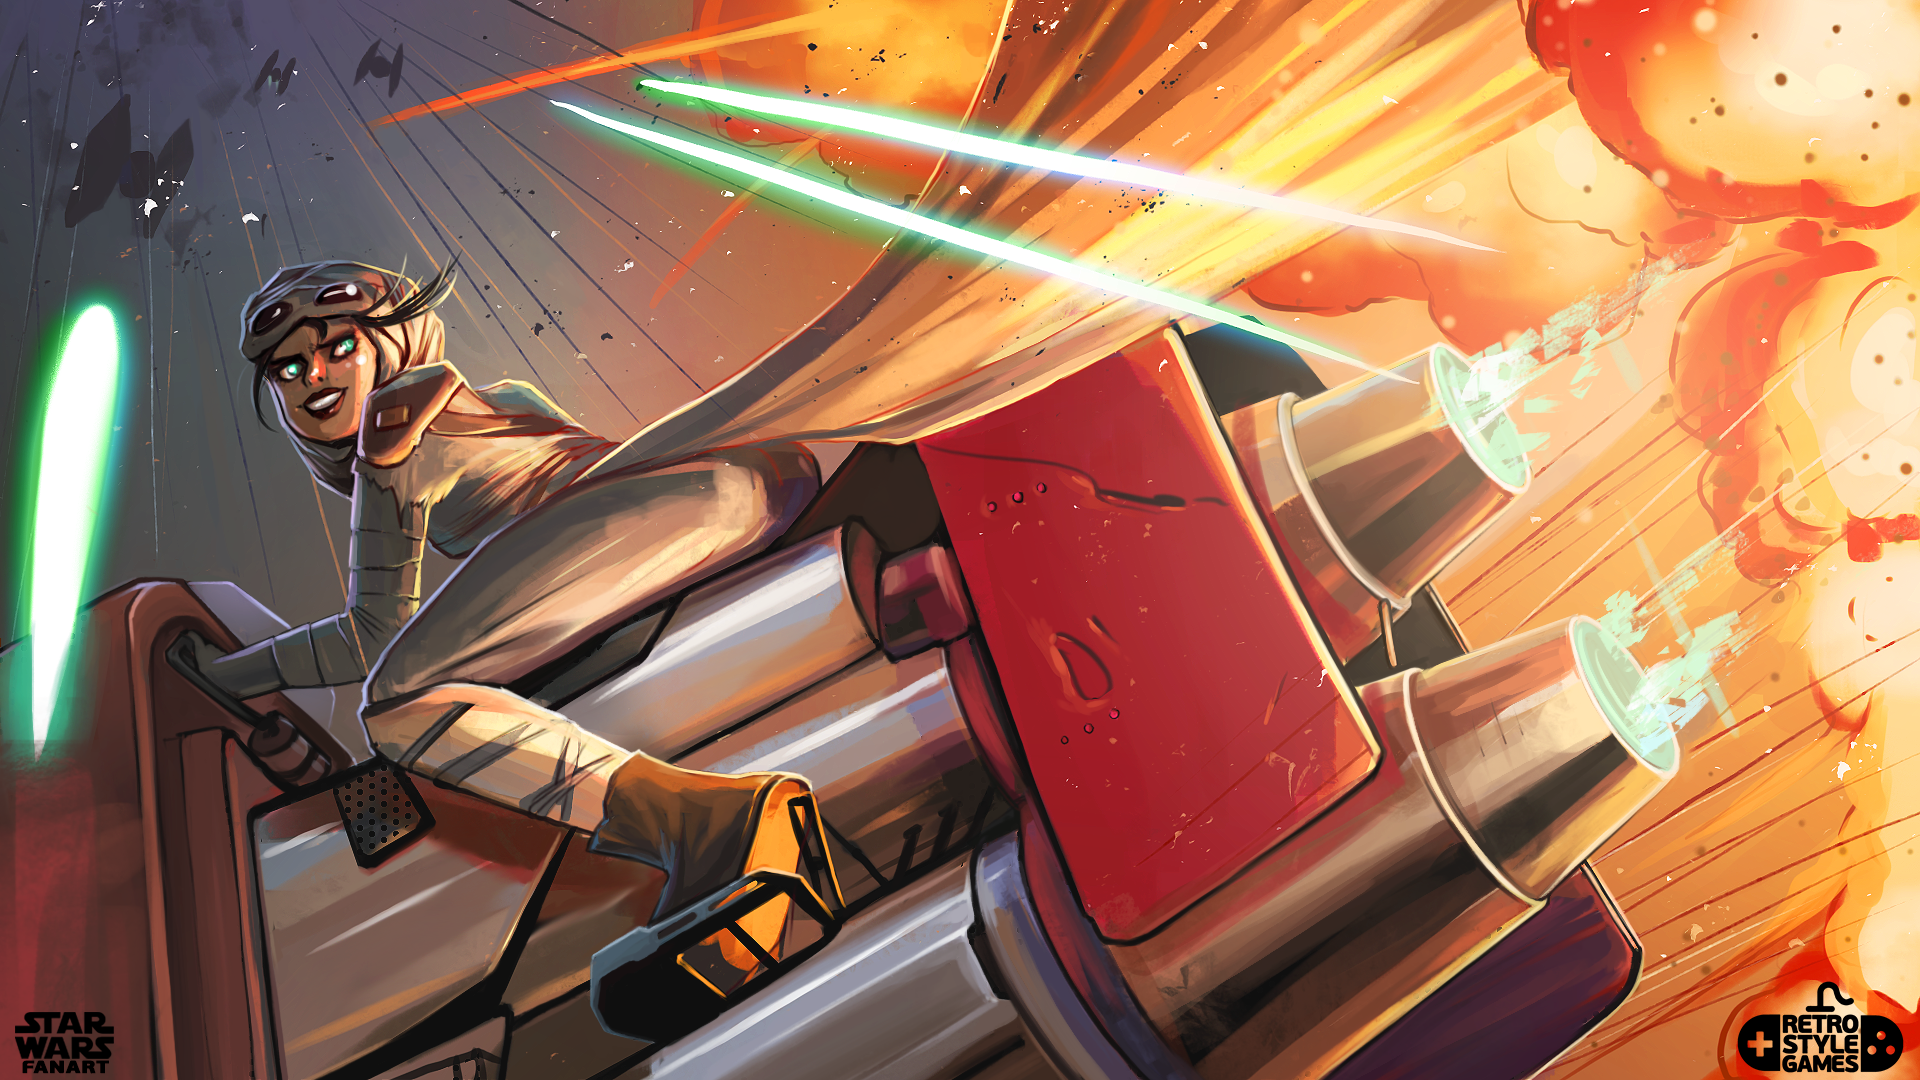 05-StarWars-Rey-character-chase-illustration